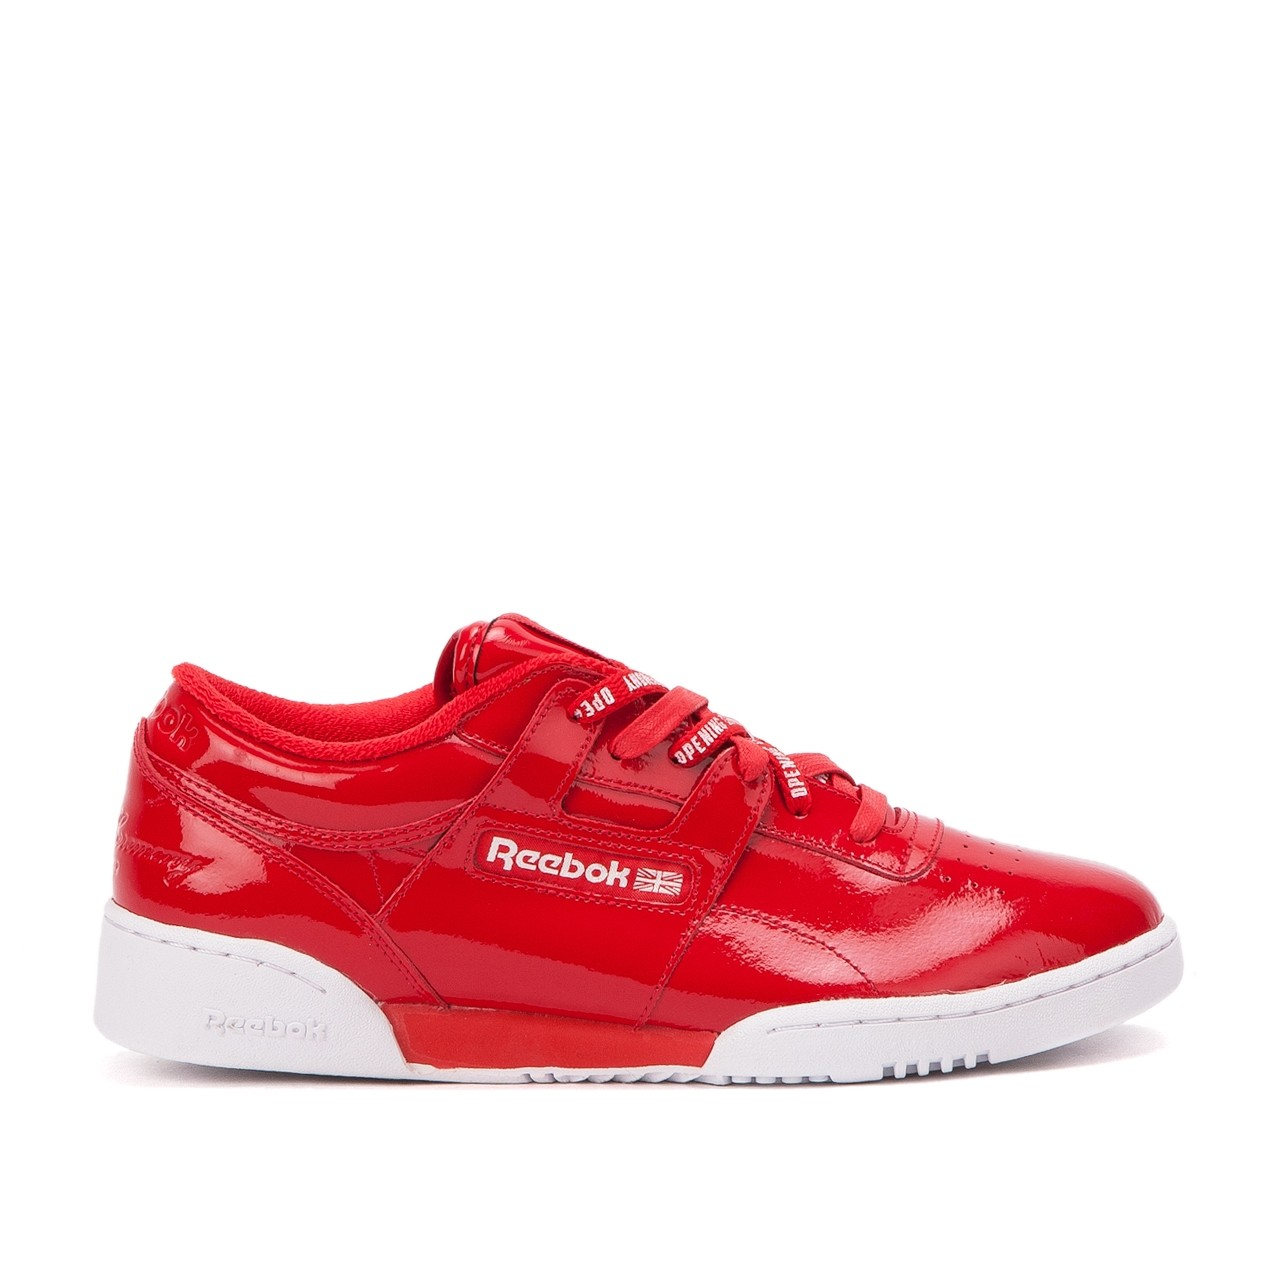 reebok-x-opening-ceremony-workout-lo-clean-oc-scarlet-white-cn5698-1_1